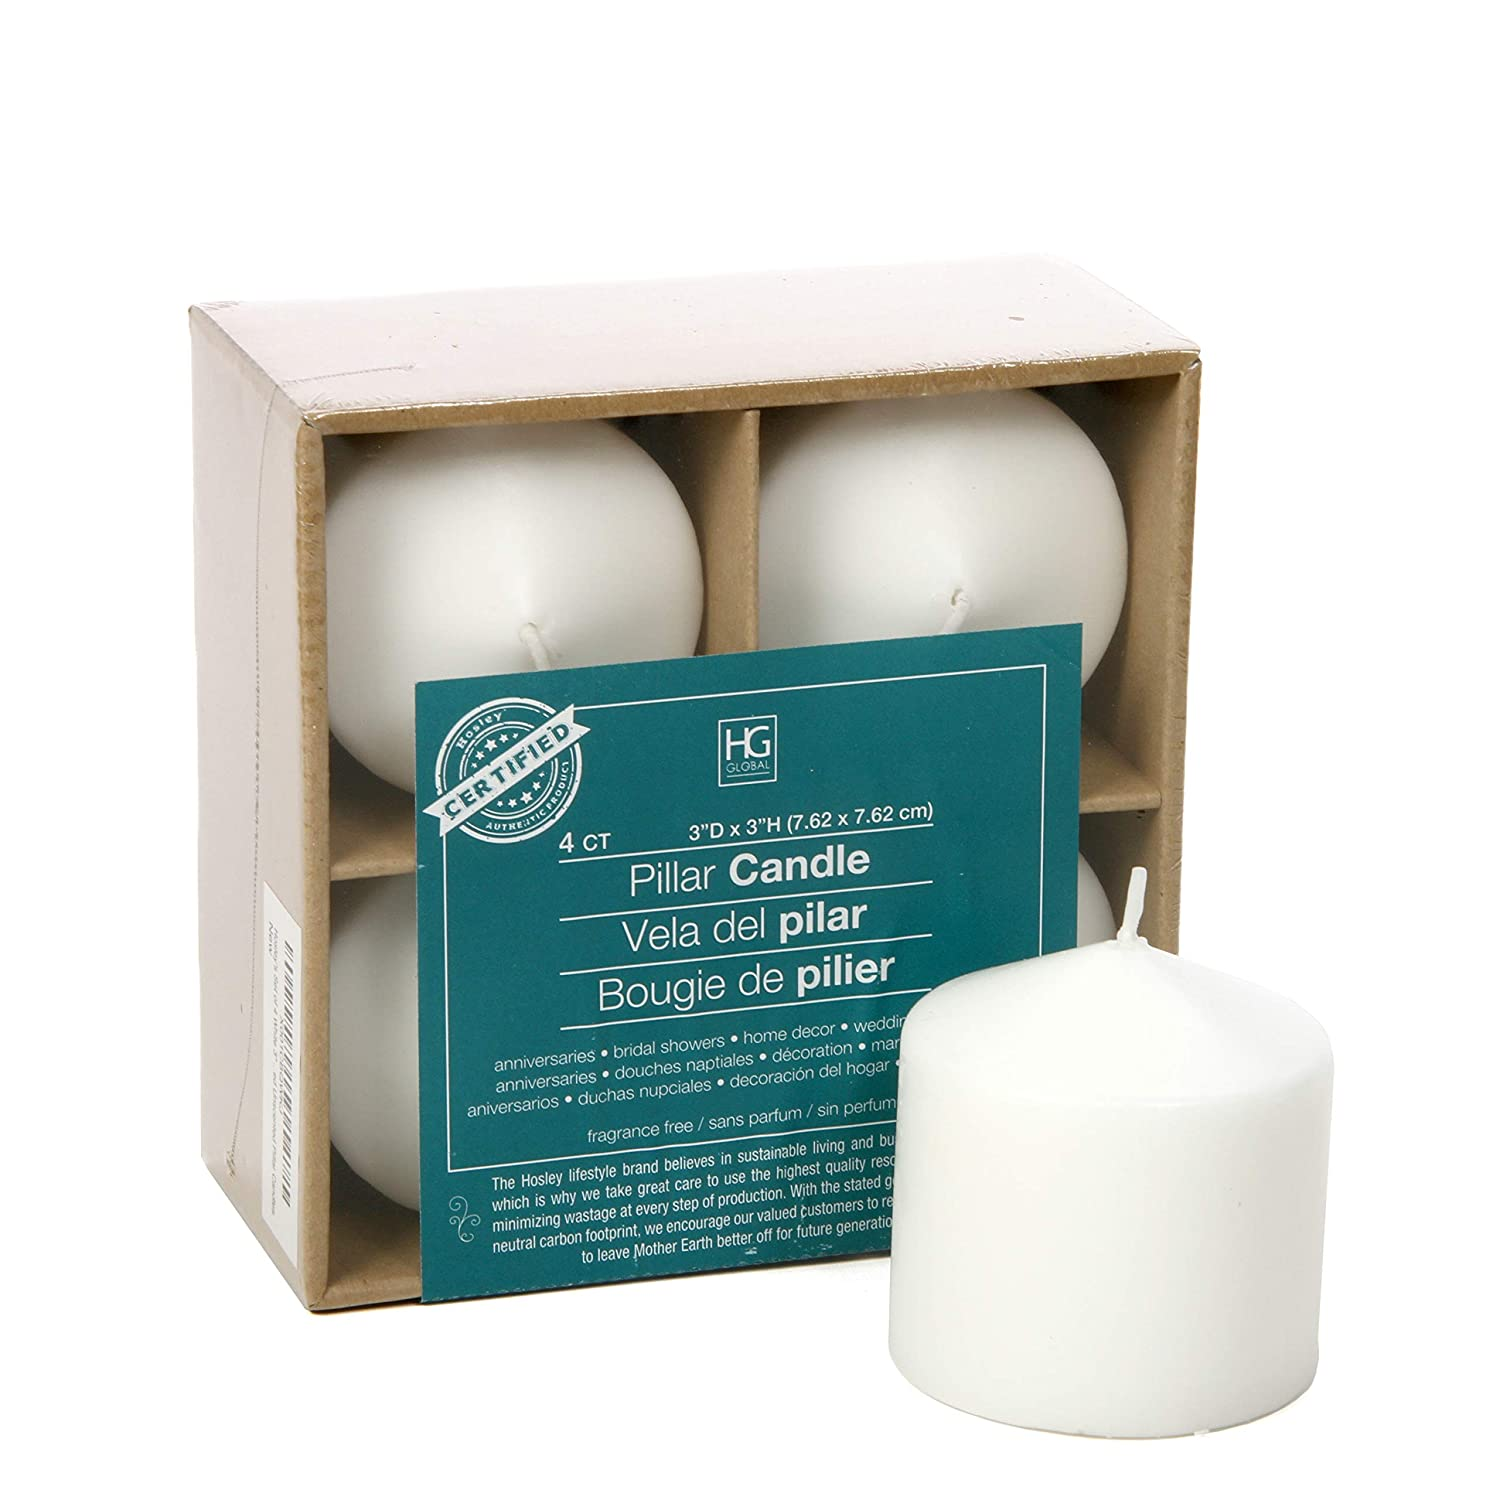 Hosley 3x3 High White Pillar Candles, Set of 4. Unscented. Bulk Buy, Using a Wax Blend. Ideal for Wedding, Birthday Emergency Lanterns, Spa, Aromatherapy, Party, Reiki, Candle Gardens O3 HG Global FBA-G08899ON-1-EA